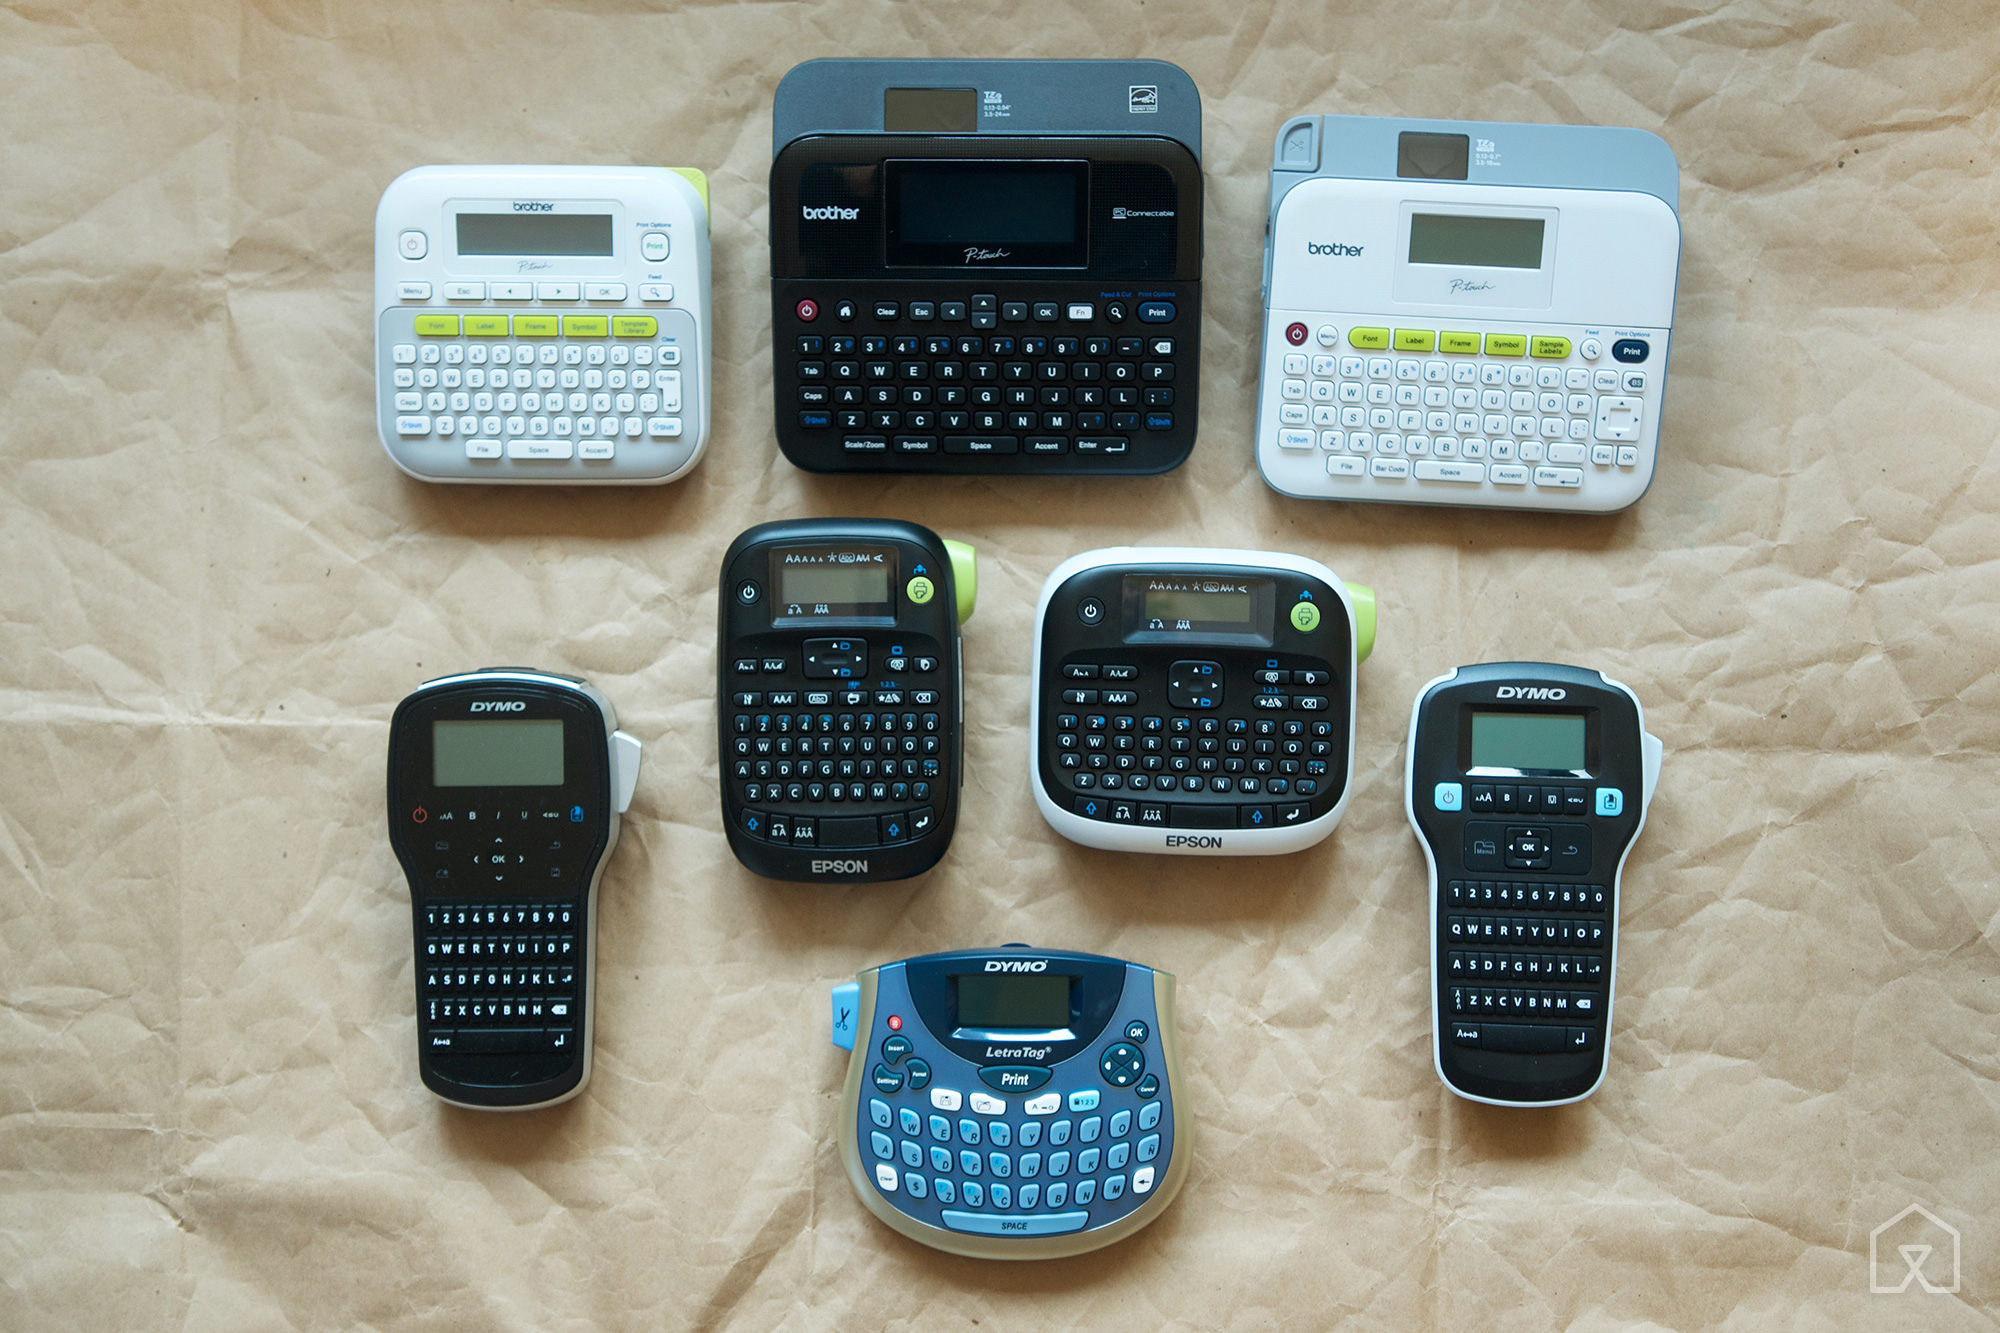 The best label maker - AIVAnet